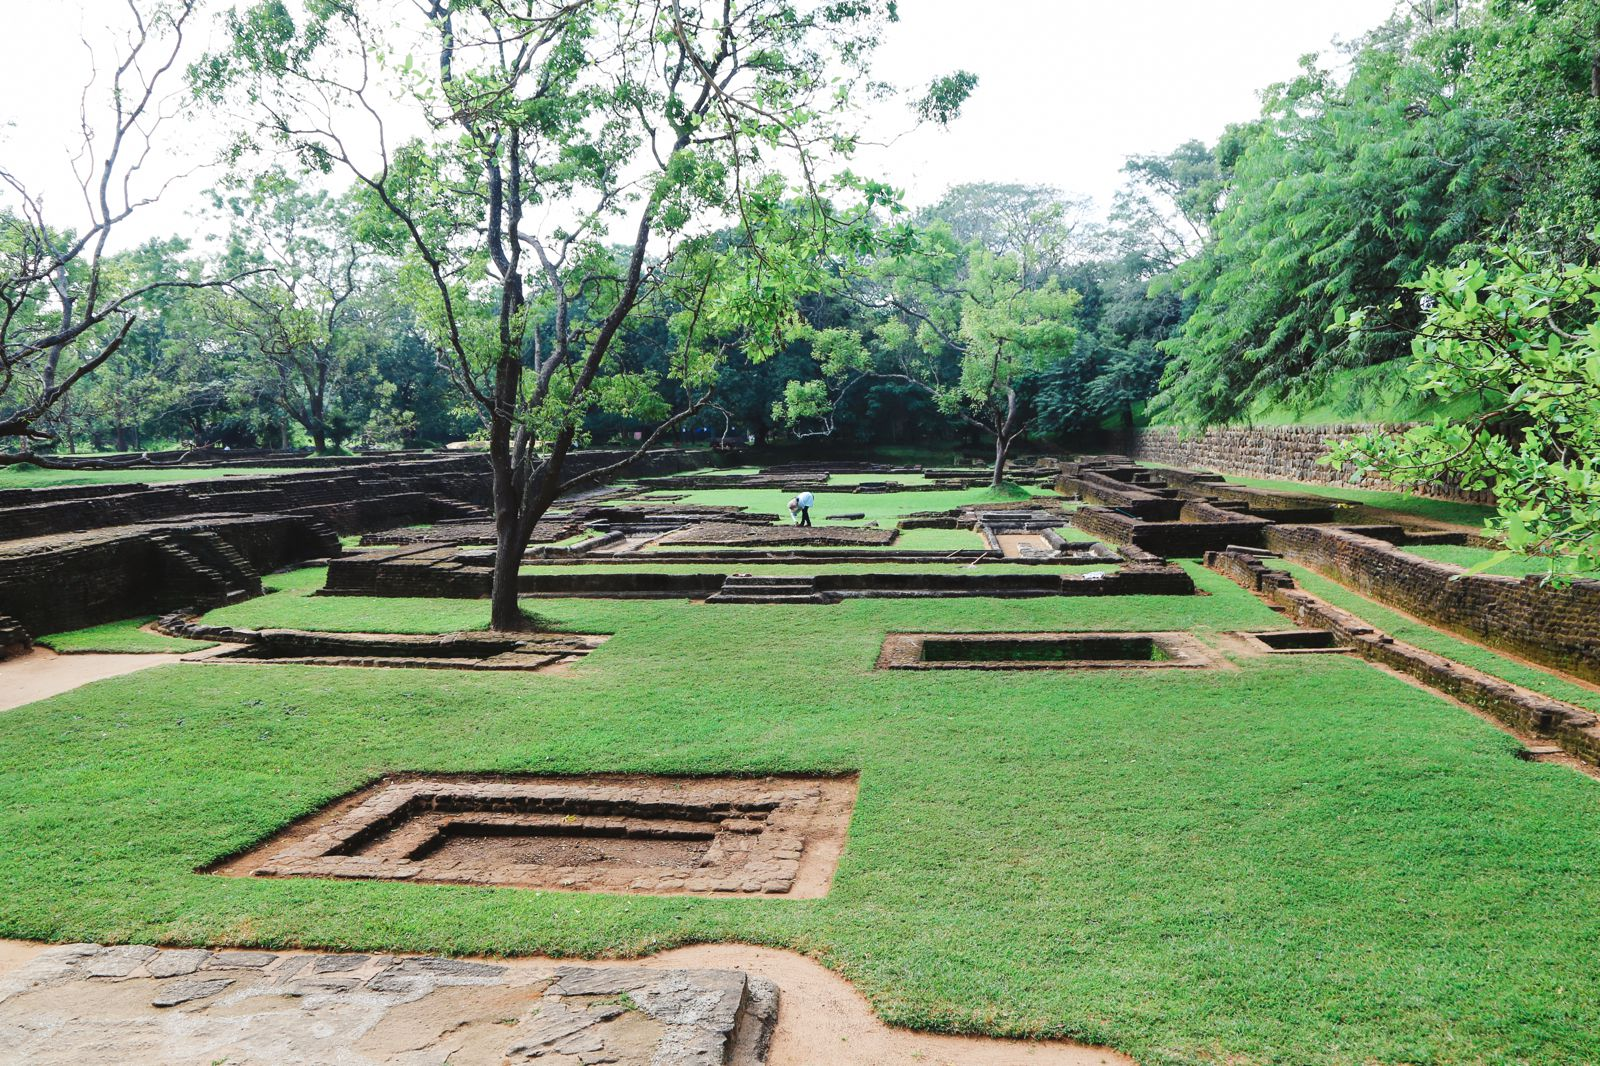 The Complete Guide To Climbing Sri Lanka's UNESCO World Heritage Site Of Sigiriya - Lion Rock (5)